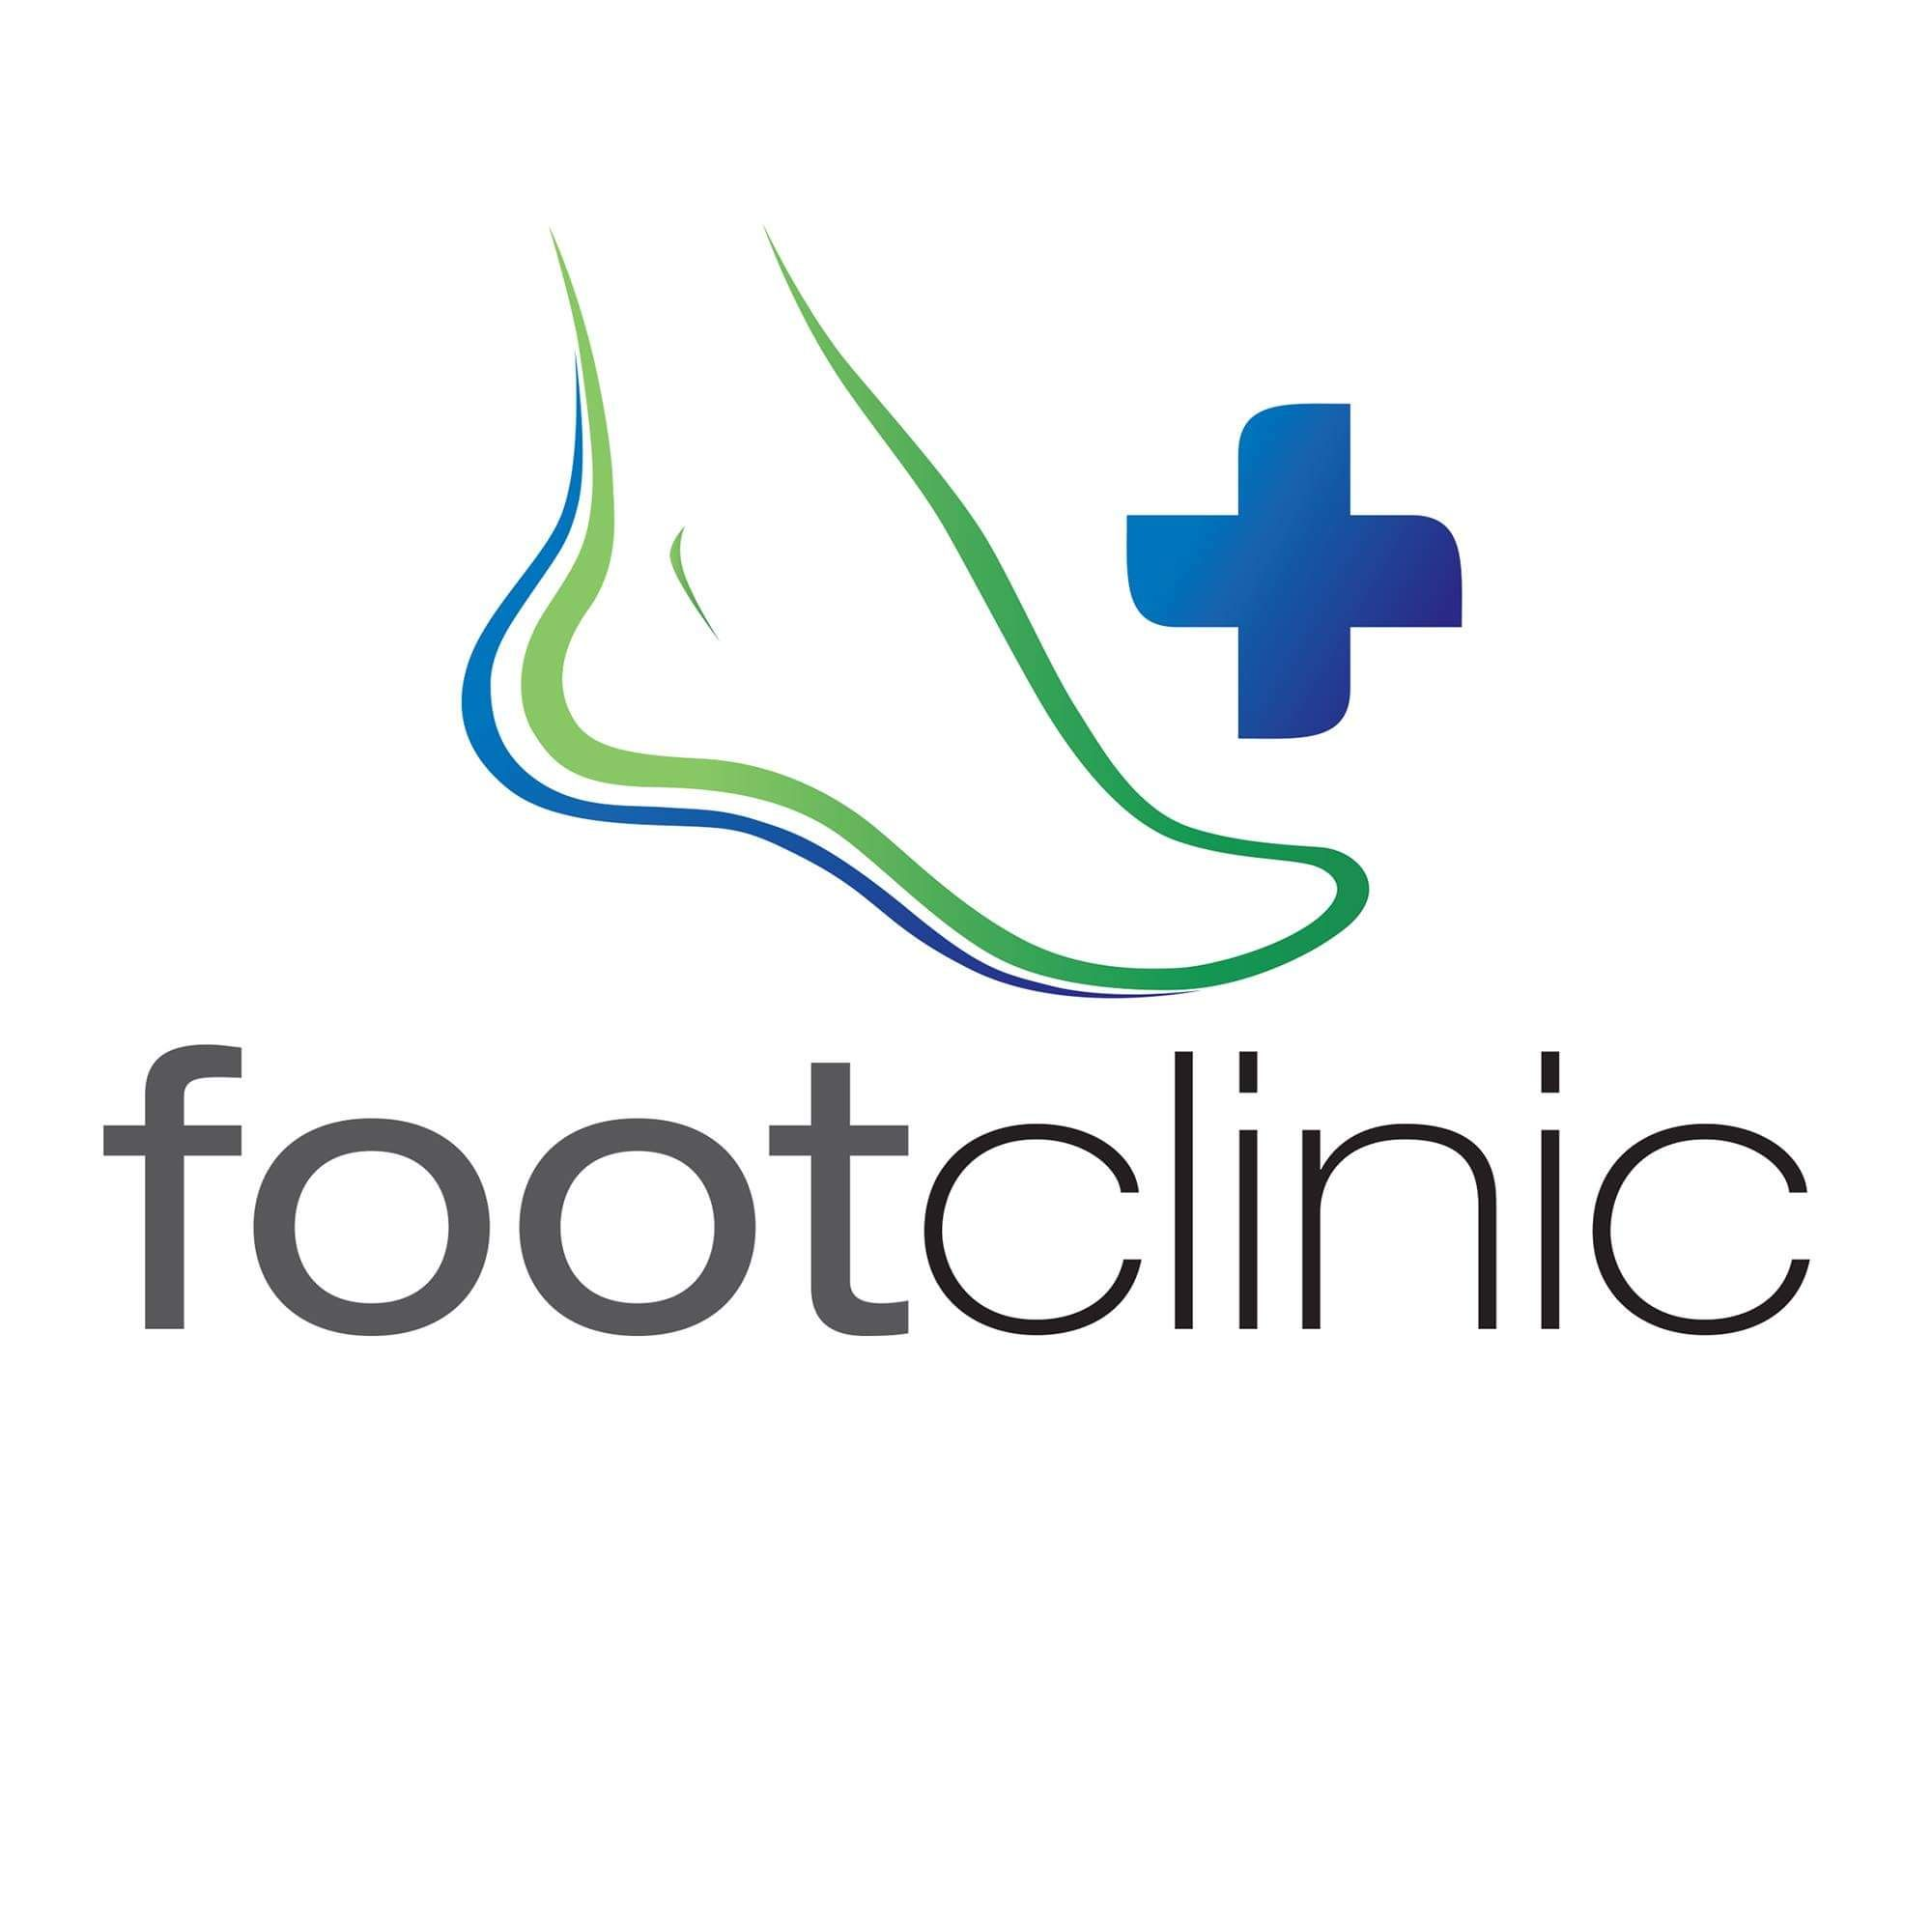 Foot clinic m&s